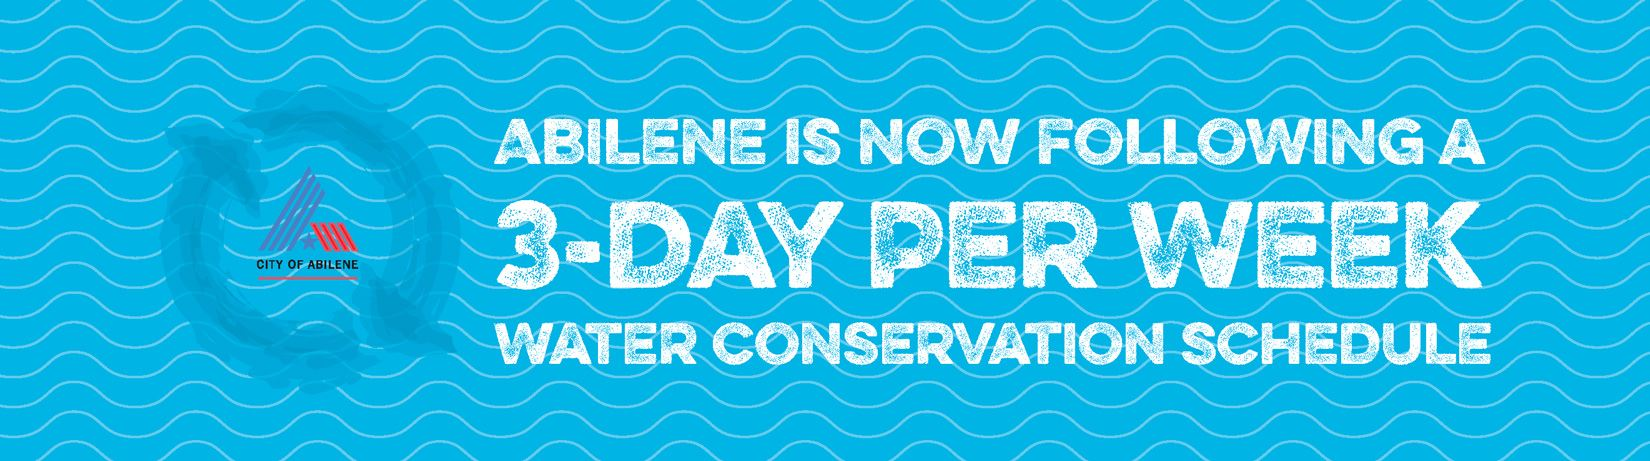 Abilene Is Now Following a 3-Day Per Week Water Conservation Schedule